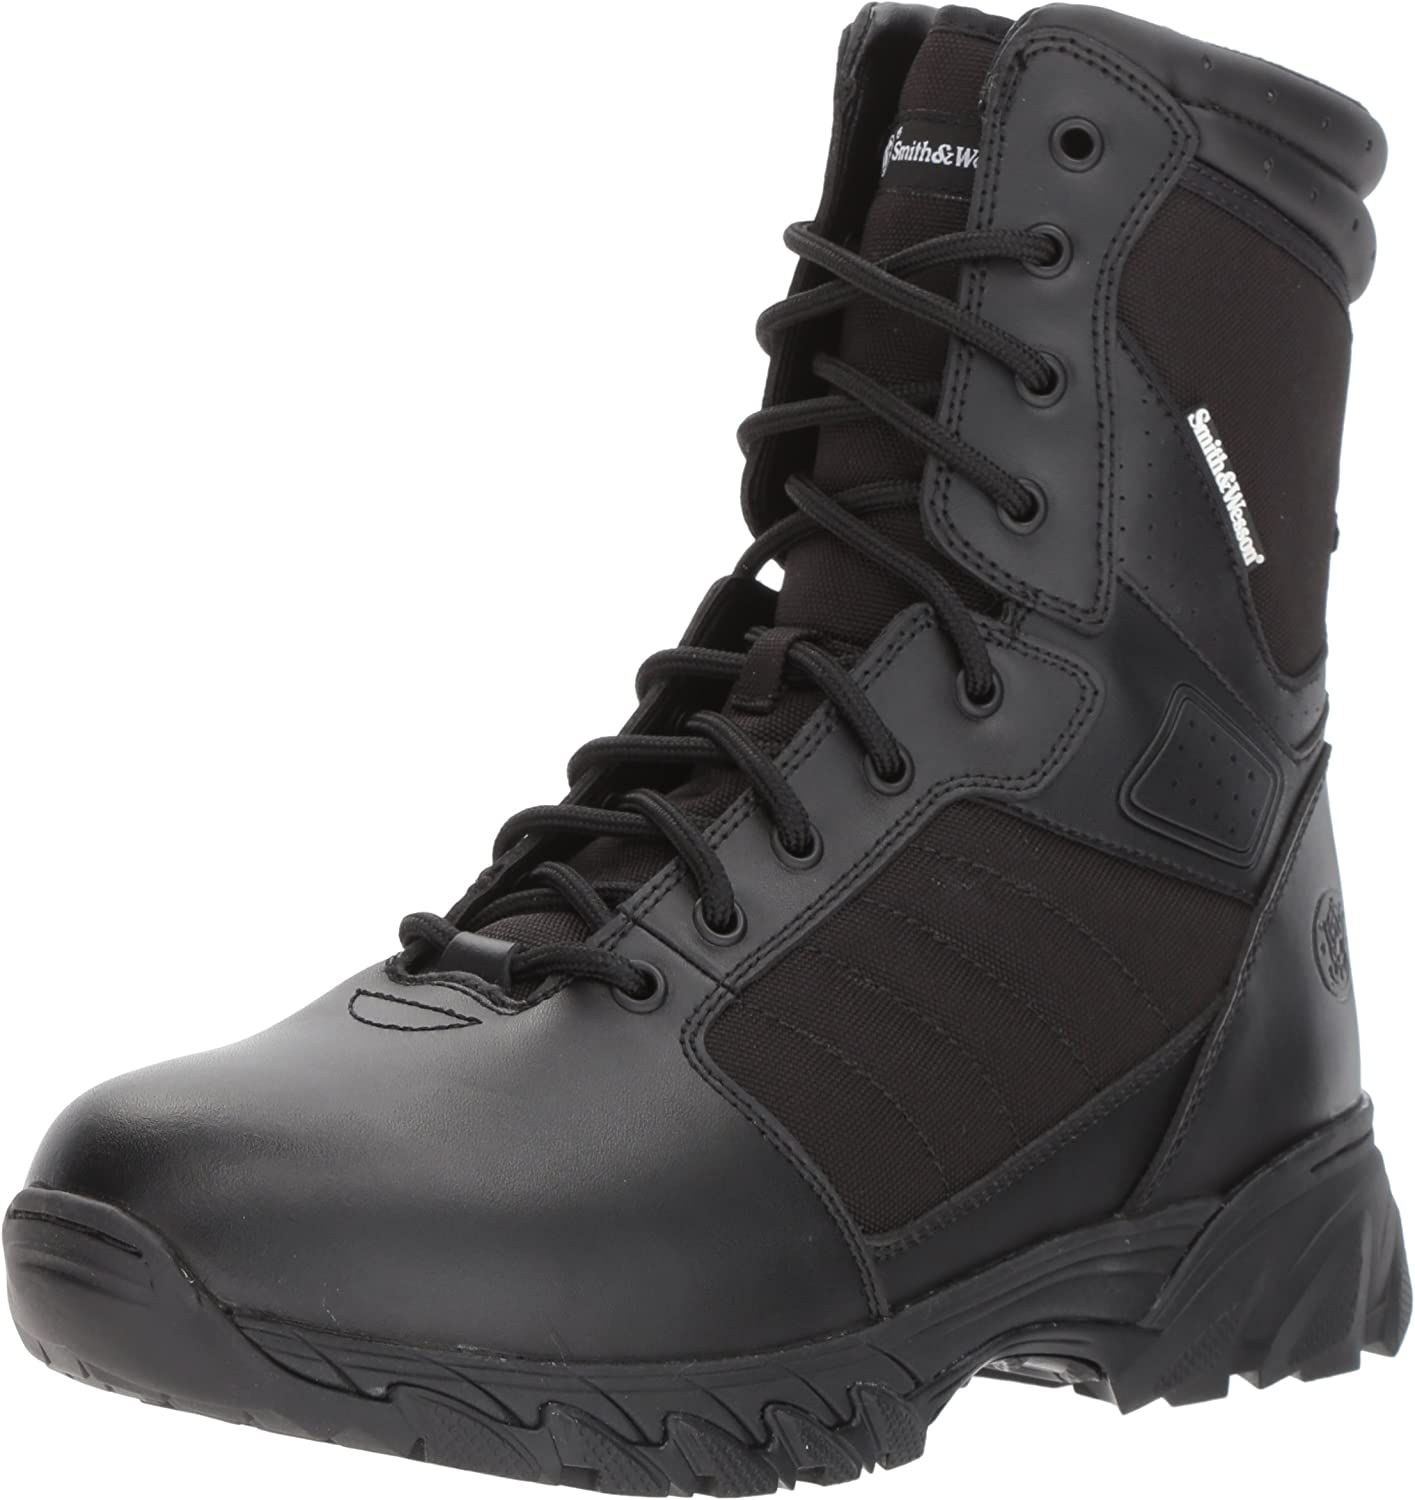 Smith Manufacturer OFFicial shop Wesson Men's Ranking TOP3 Breach 2.0 Tactical Boots